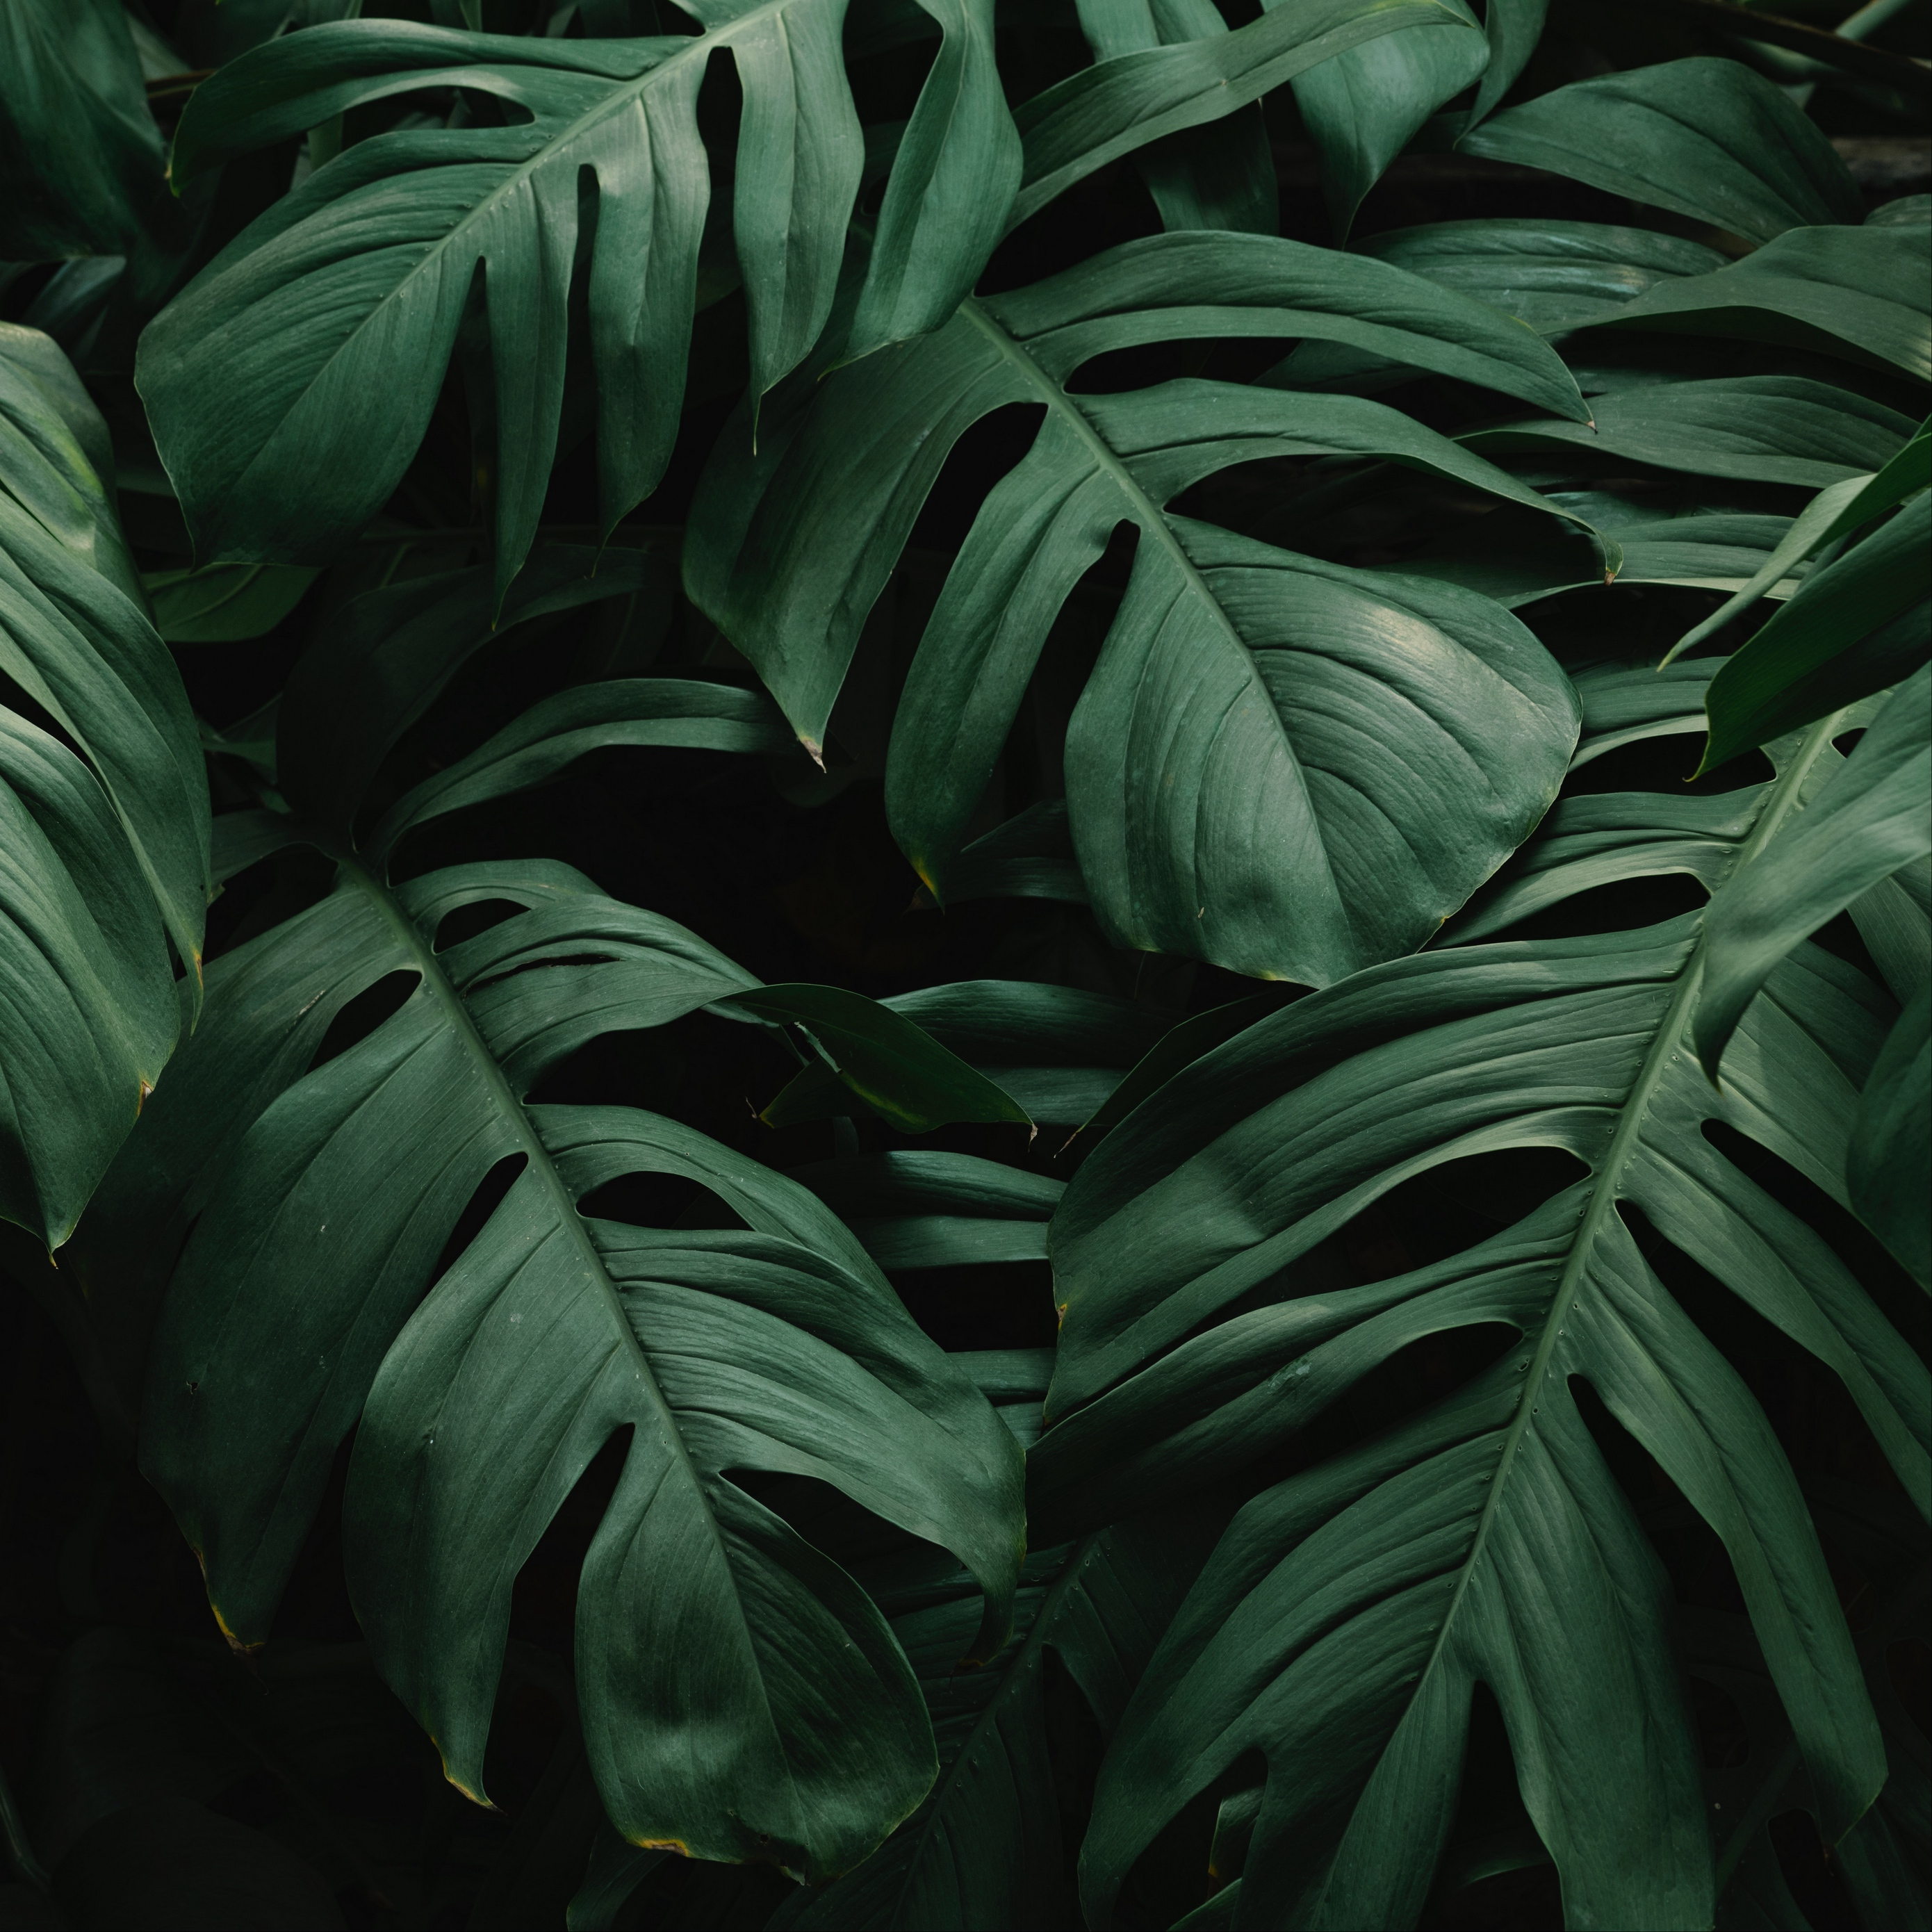 Wallpaper Leaves Plant Green Dark Vegetation Green Leaves 2780x2780 Download Hd Wallpaper Wallpapertip